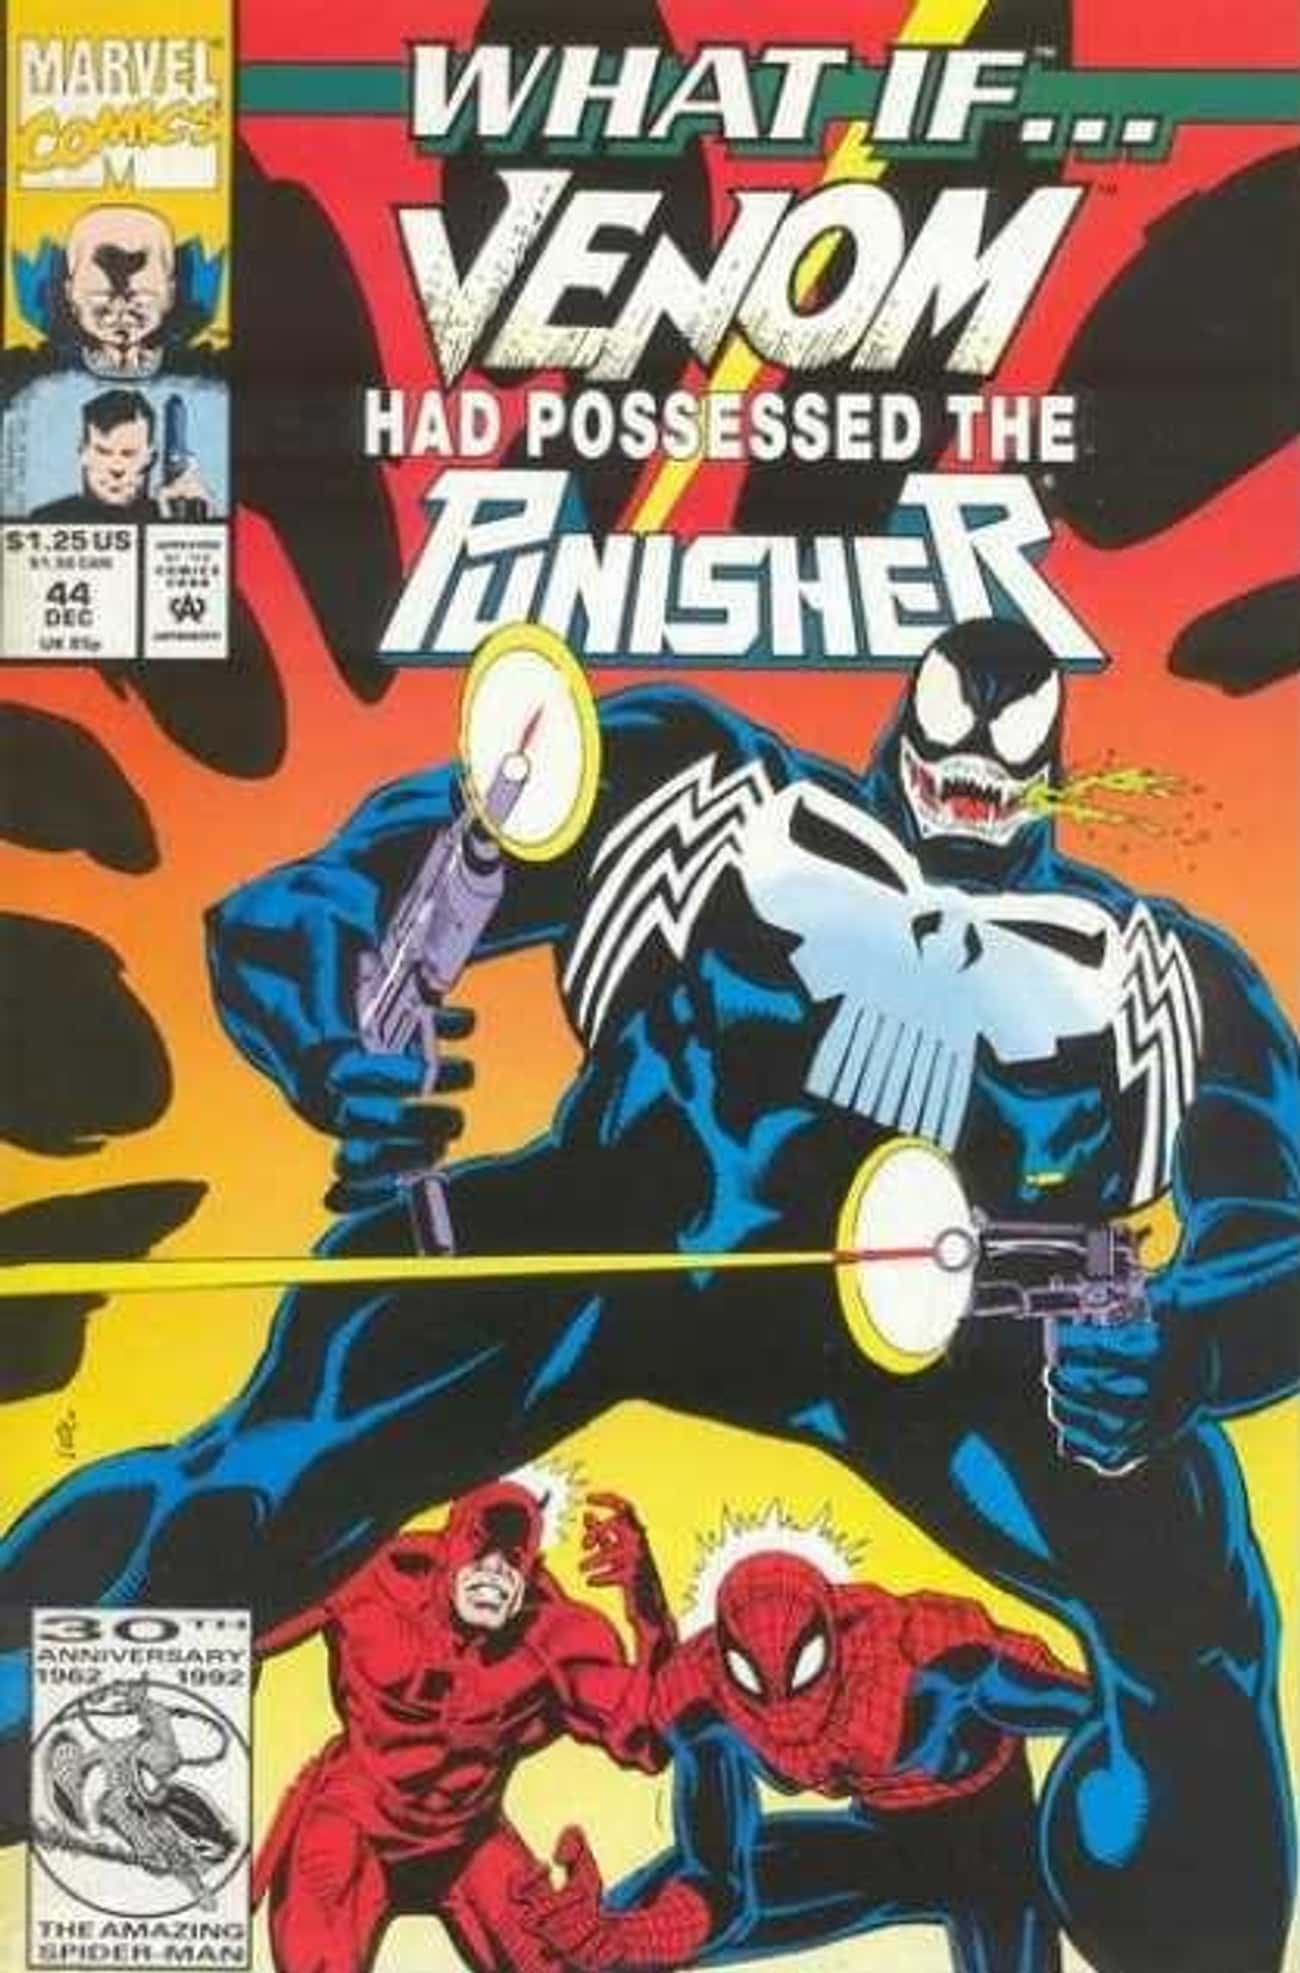 Punisher Venom is listed (or ranked) 1 on the list Most Violent And Twisted Incarnations Of Venom in Comic Book History